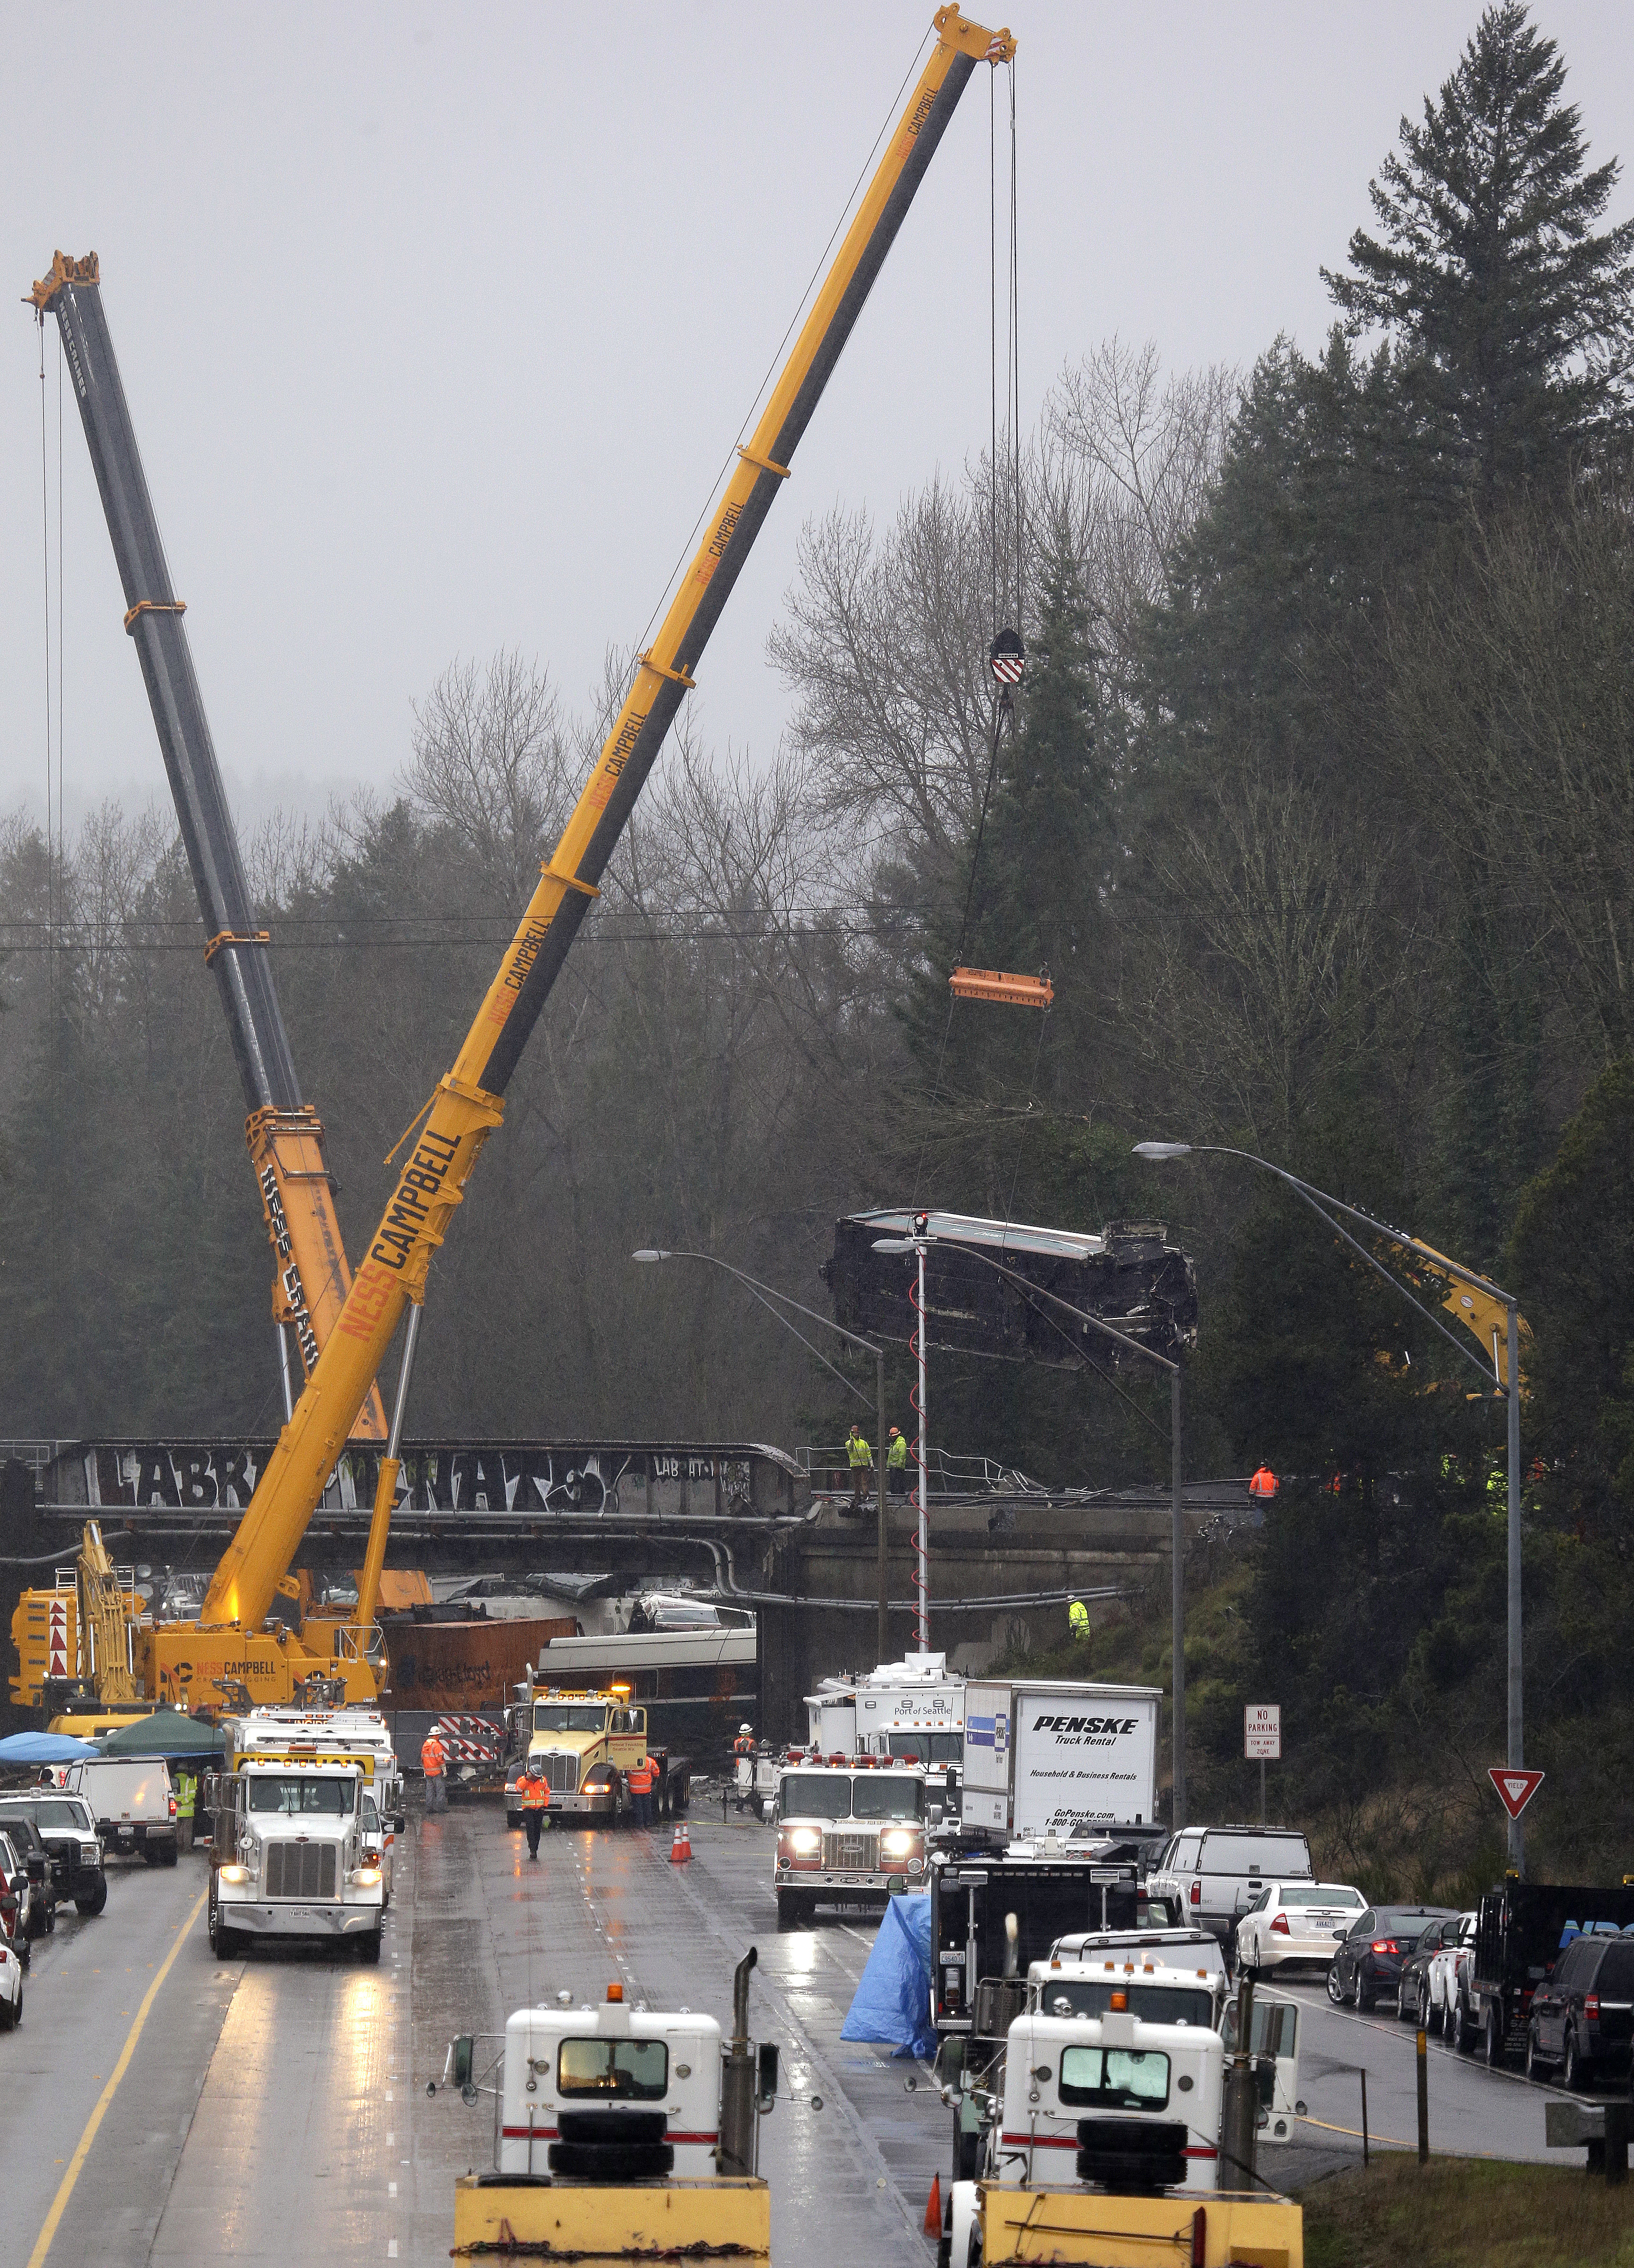 A crane is used to lower a damaged Amtrak train car from an overpass at the scene of Monday's deadly train crash onto Interstate 5 in DuPont, Washington, Dec. 19, 2017.